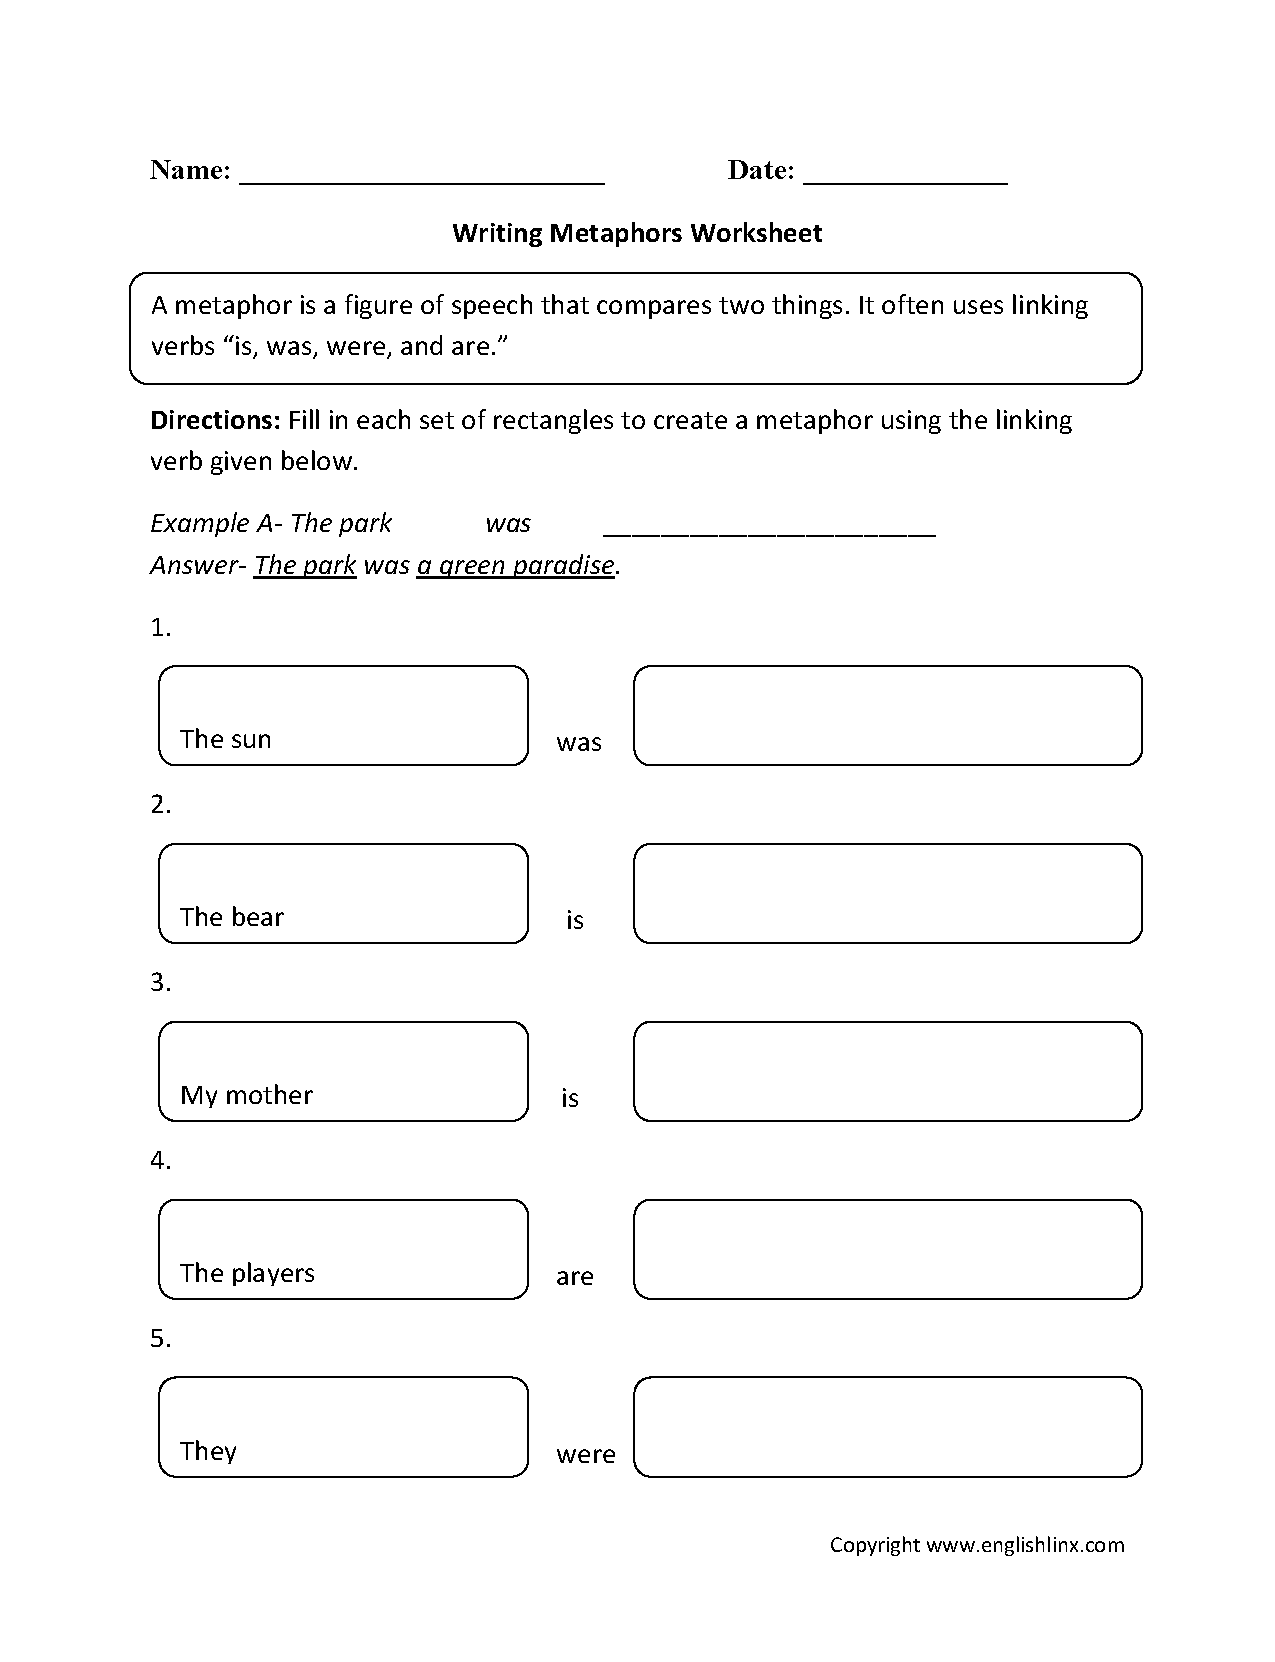 simile homework help englishlinx com metaphors worksheets englishlinx com writing metaphors worksheet